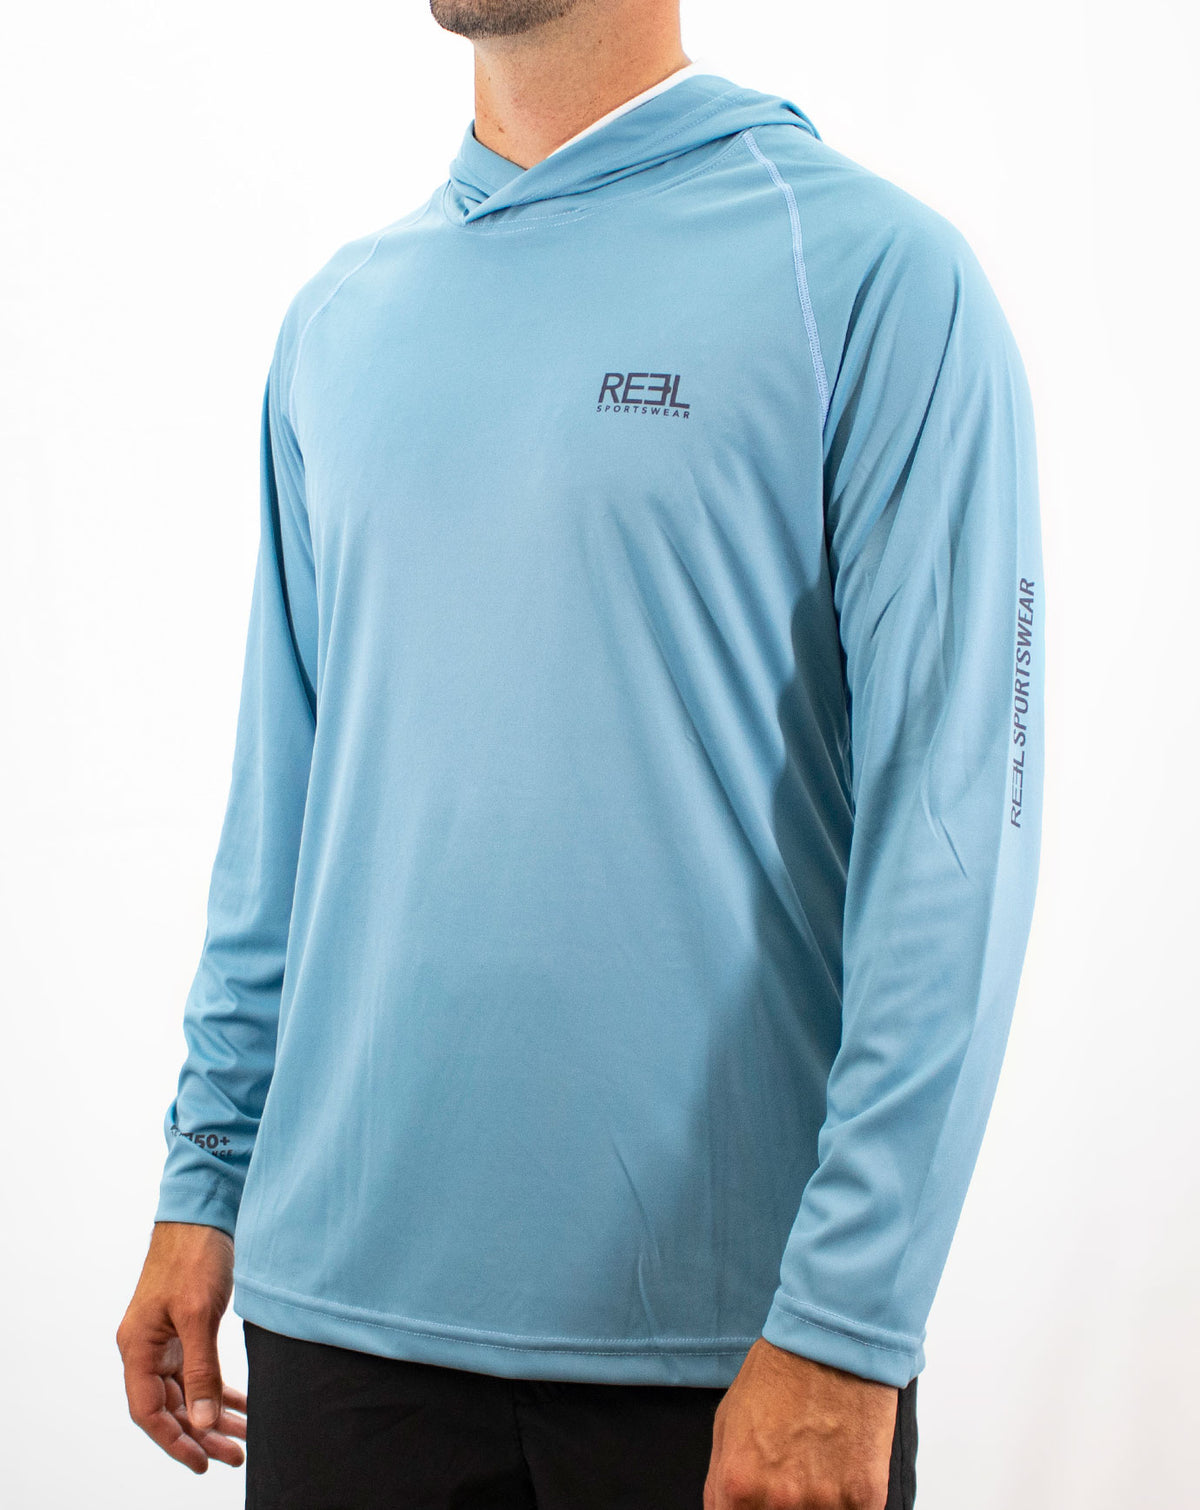 Portside Fishing Hoody